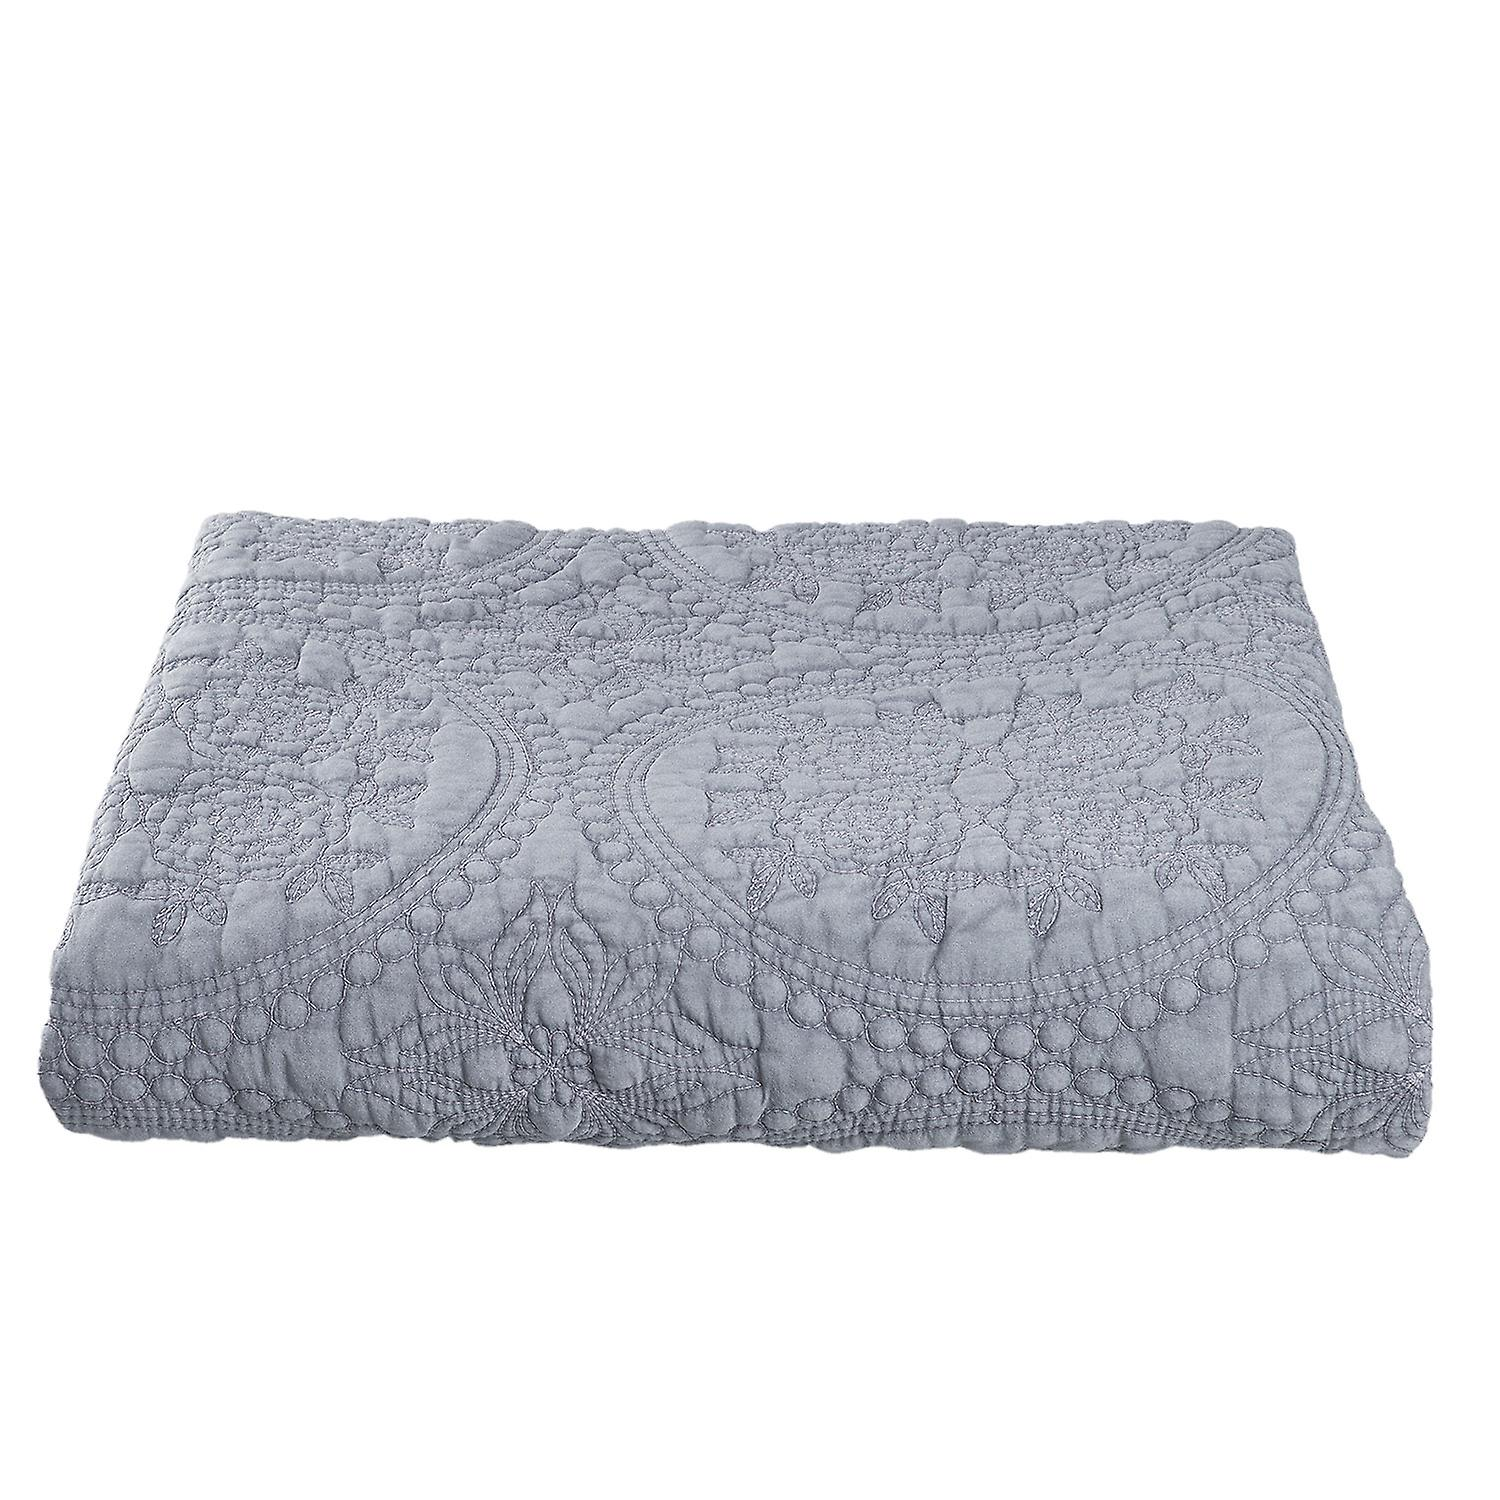 Clayre Eef Plaid.Clayre Eef Plaid Cuddly Blanket Couch Blanket Bed Cover Stonewashed 150x150 Cm